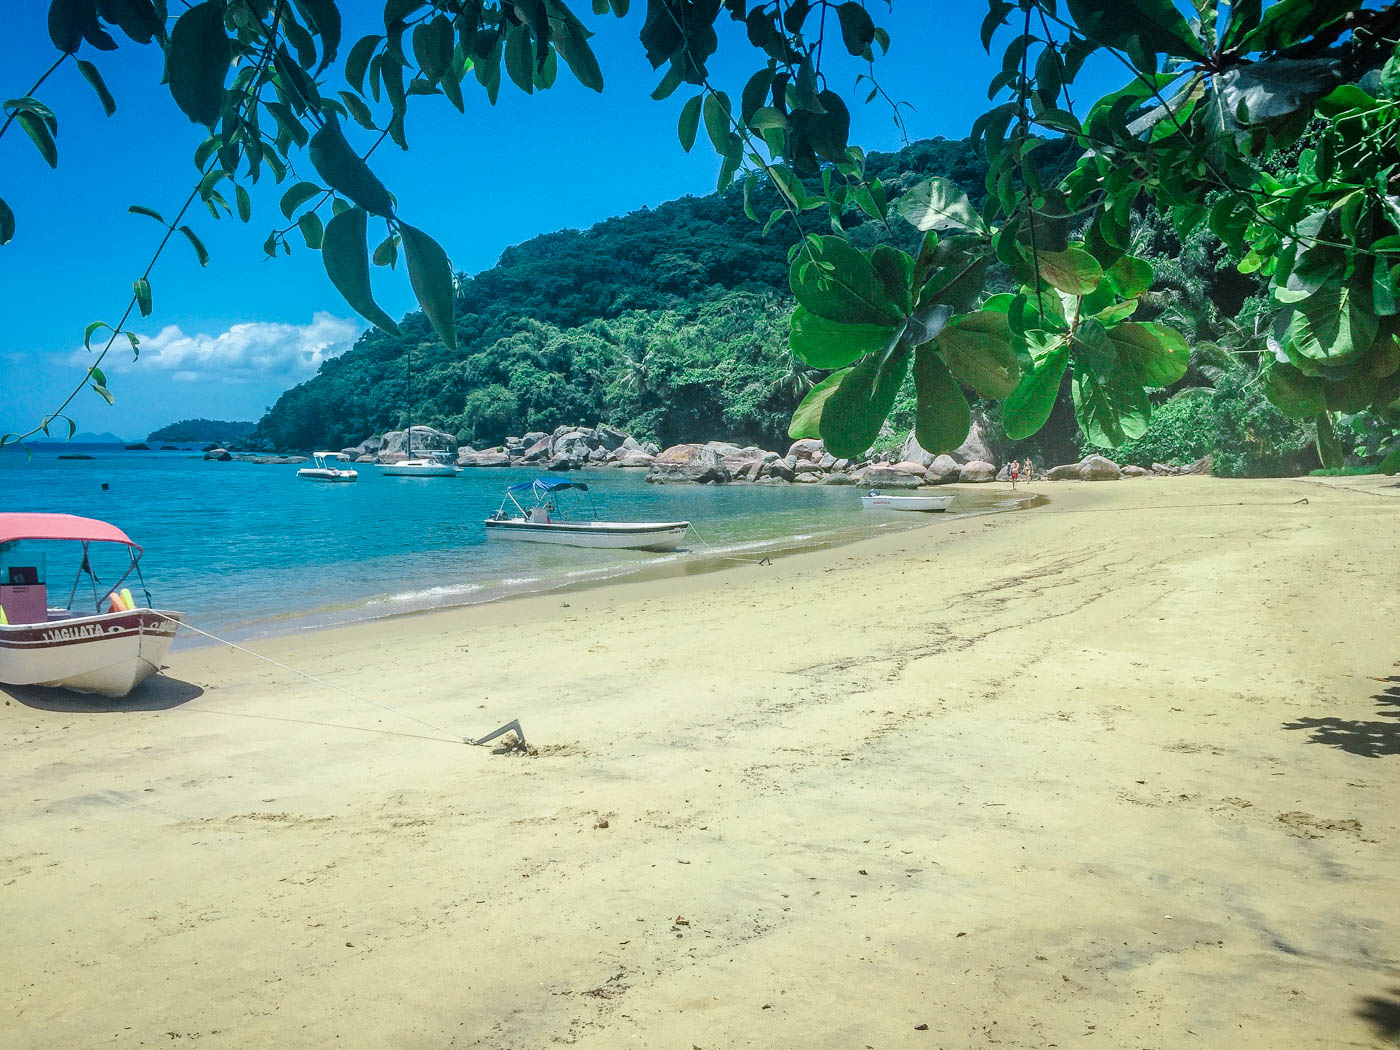 Ilha Grande I South America Travel Bucket List. 90 Awesome Things to do in South America When Backpacking and Travelling #southamerica #bucketlist #traveldestinations